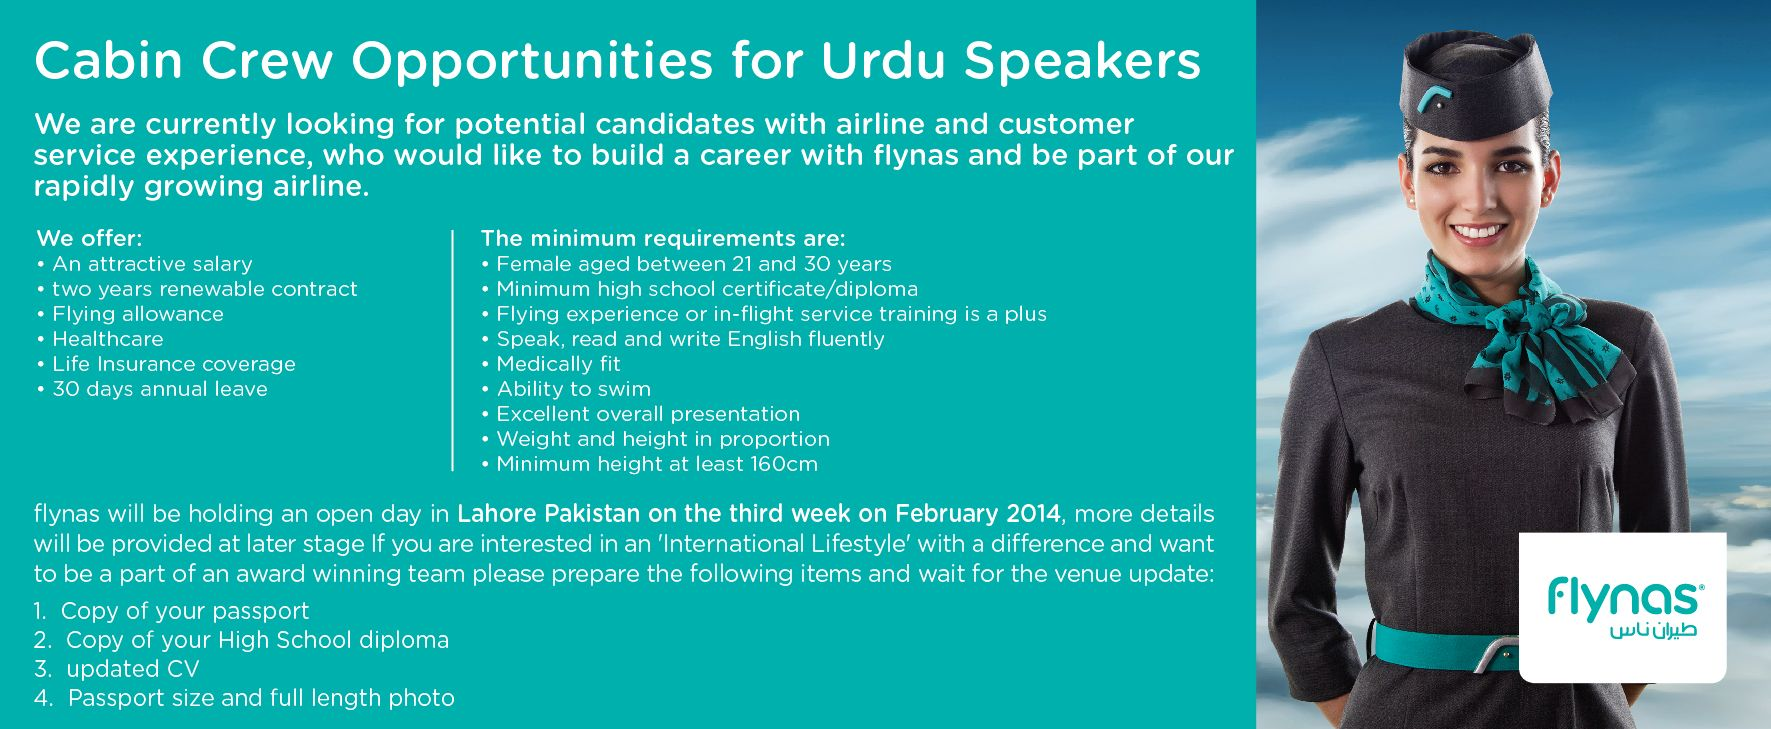 Cabin crew opportunities for Urdu Speakers  Open Day for